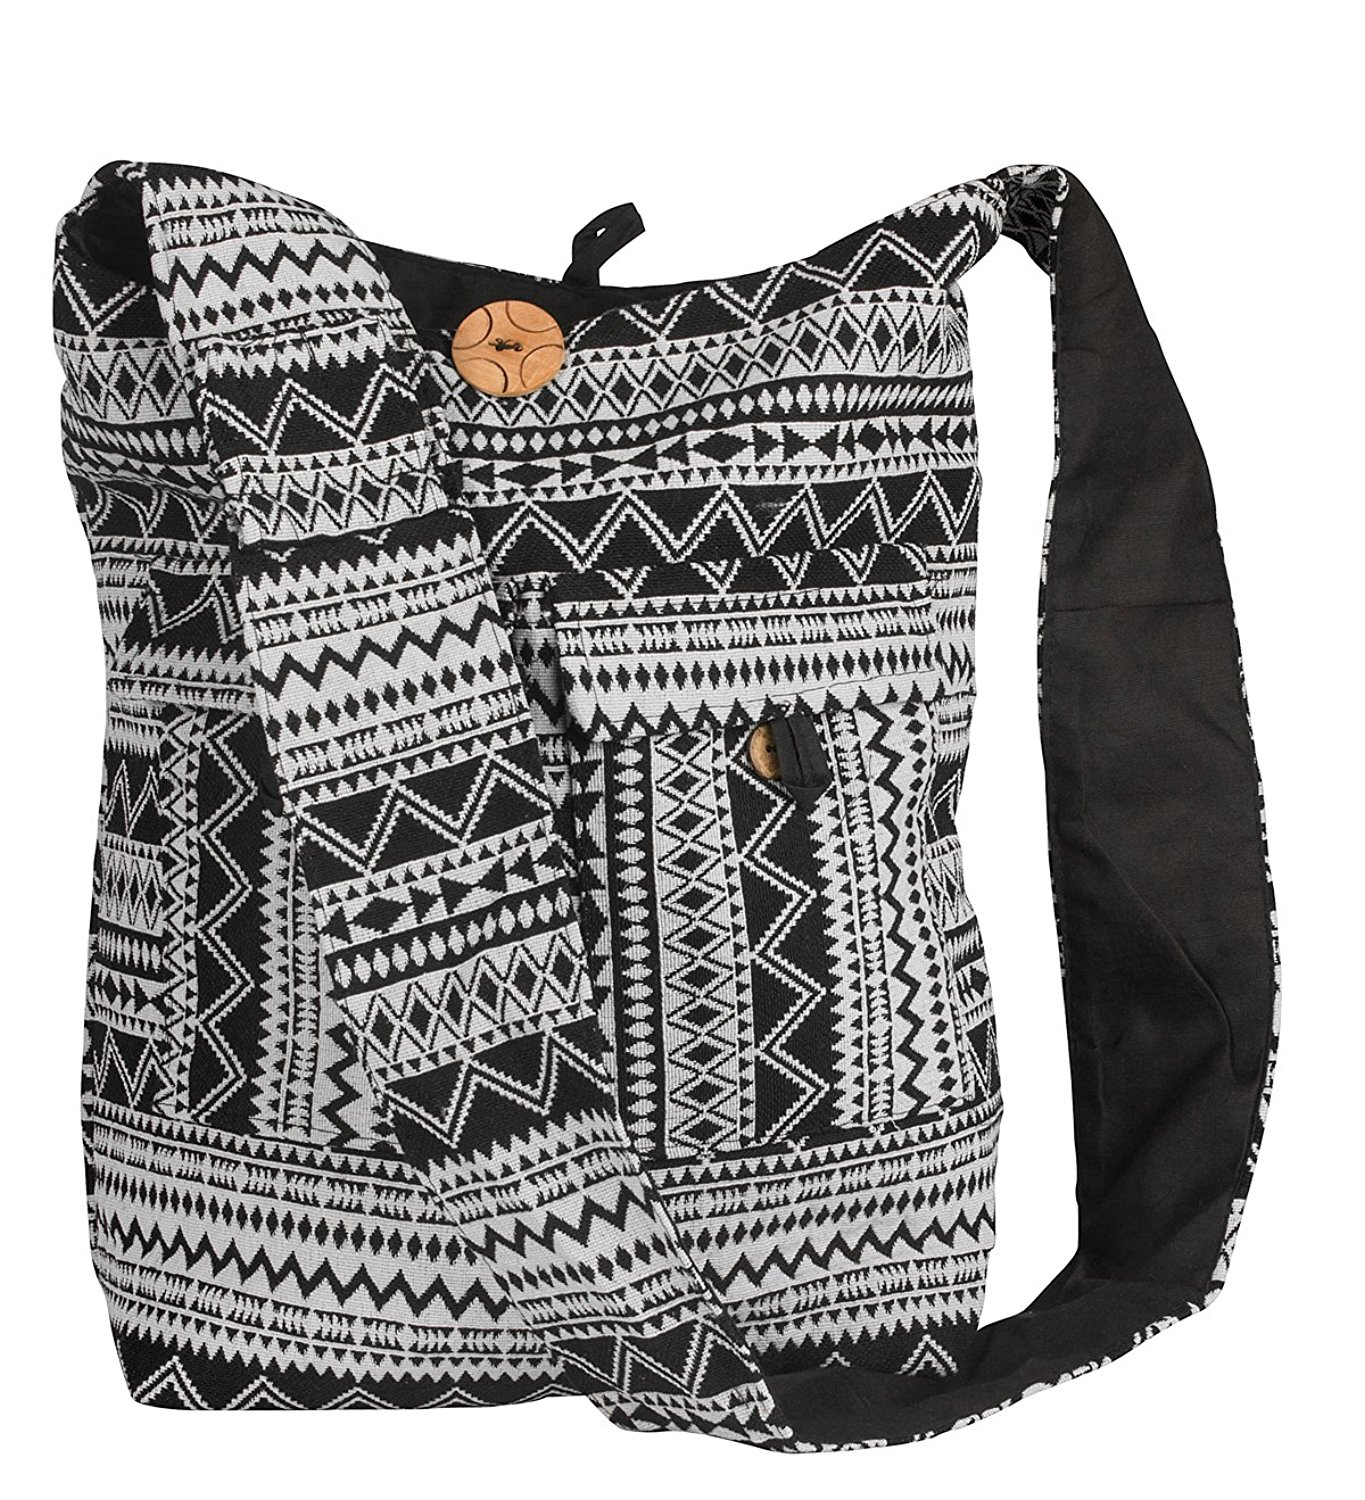 Tribe Azure Large Hobo Crossbody Sling Shoulder Bag Compartment Pockets Functional Zipper Travel Market Books Blanket Black White